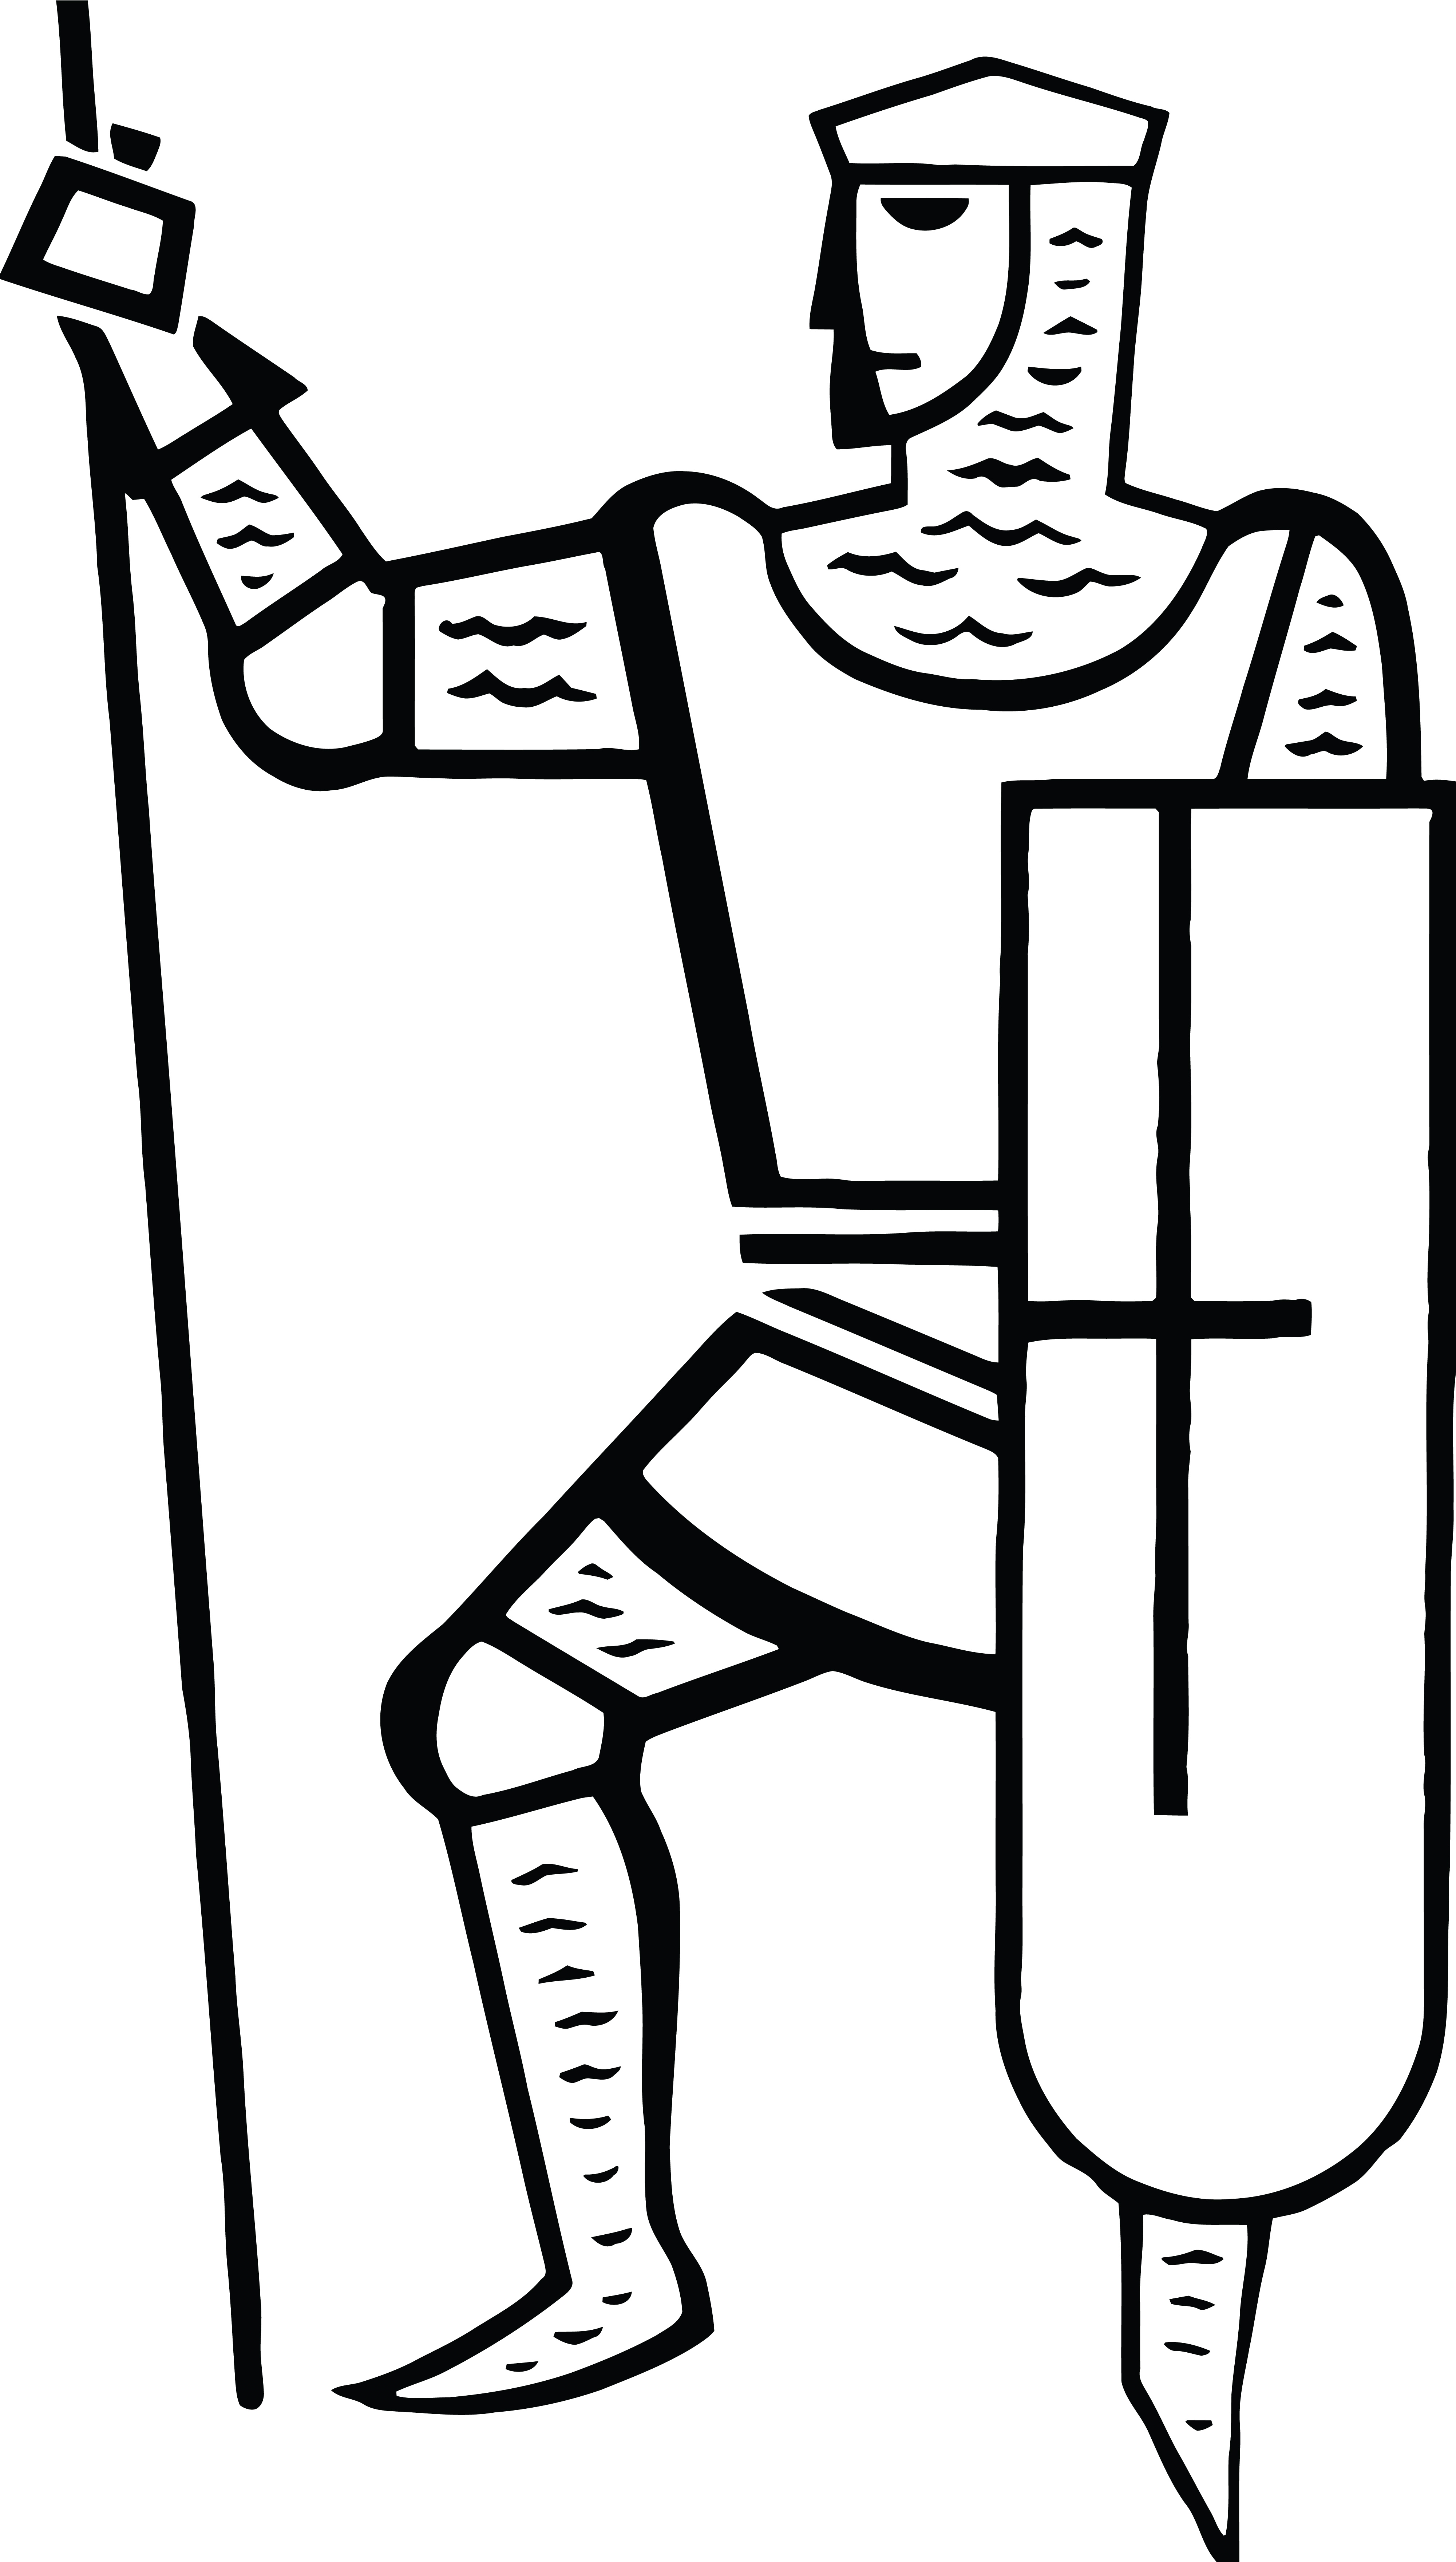 Knight clipart outline knight. Black and white free